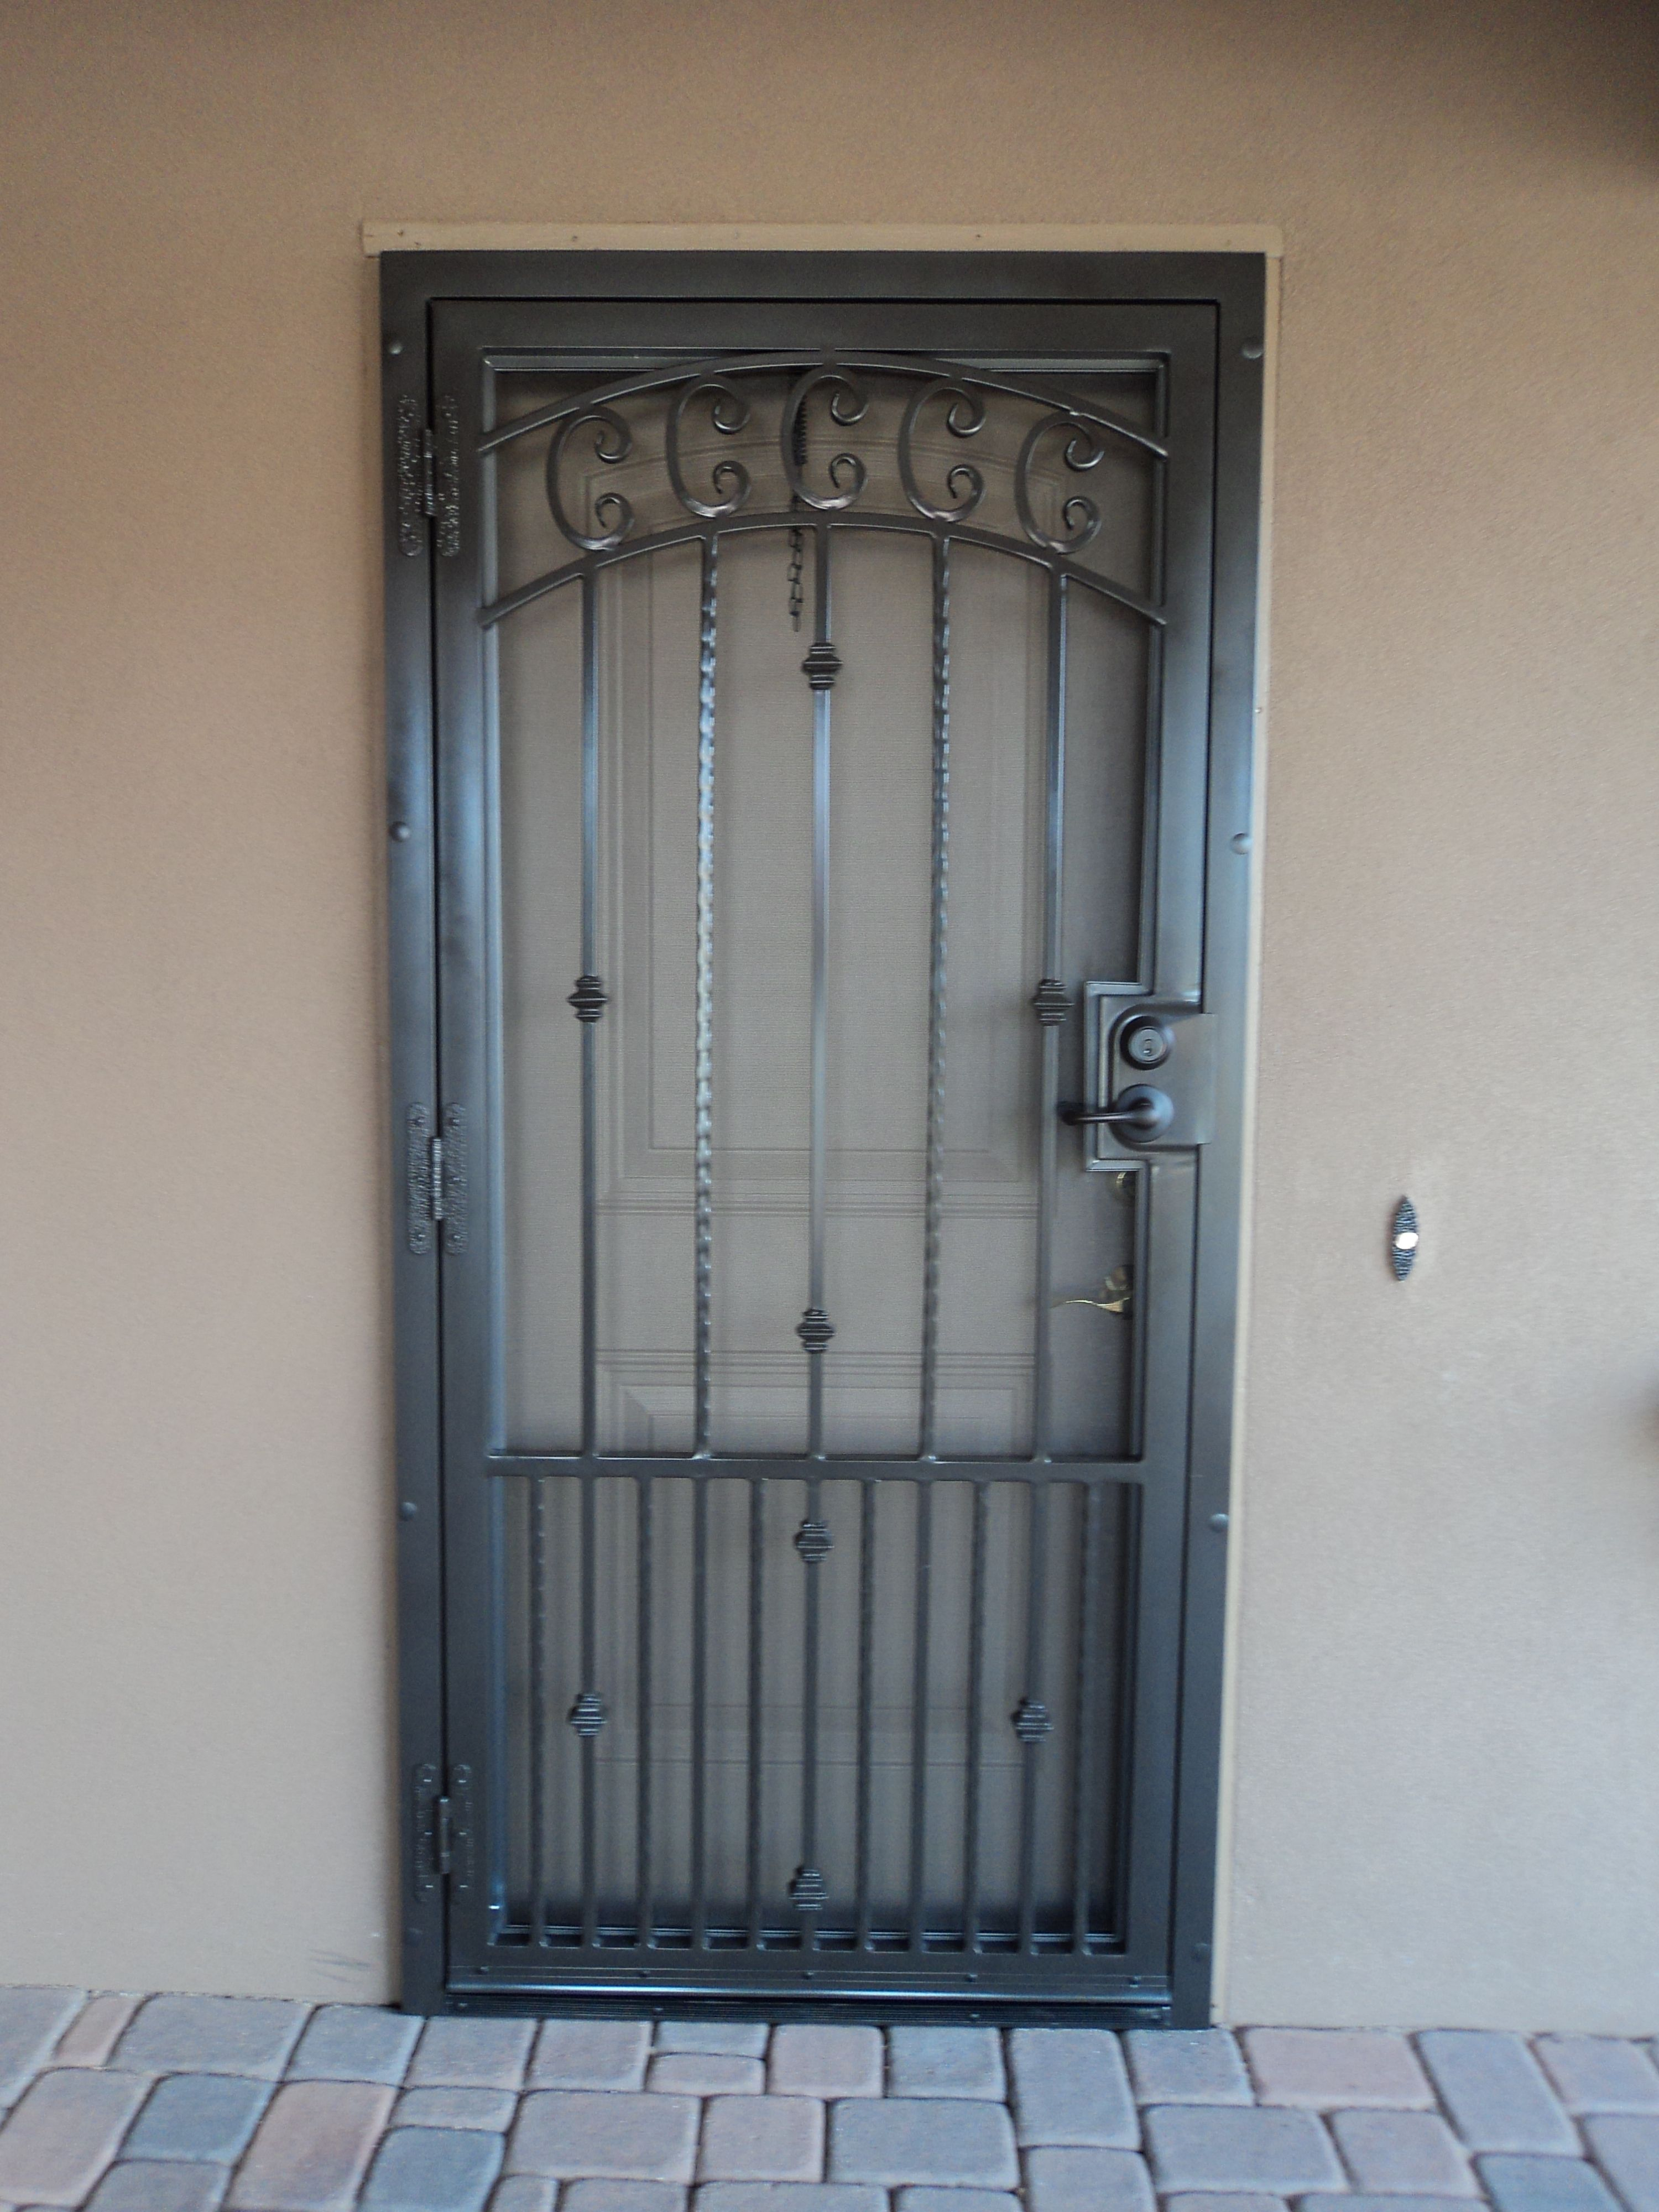 Security entrance gate glazed decorative security entrance doors - Installation Of New Security Screen Doors Of The Highest Quality From Dcs Industries For Decorative Security Screen Door Needs In The Phoenix Area